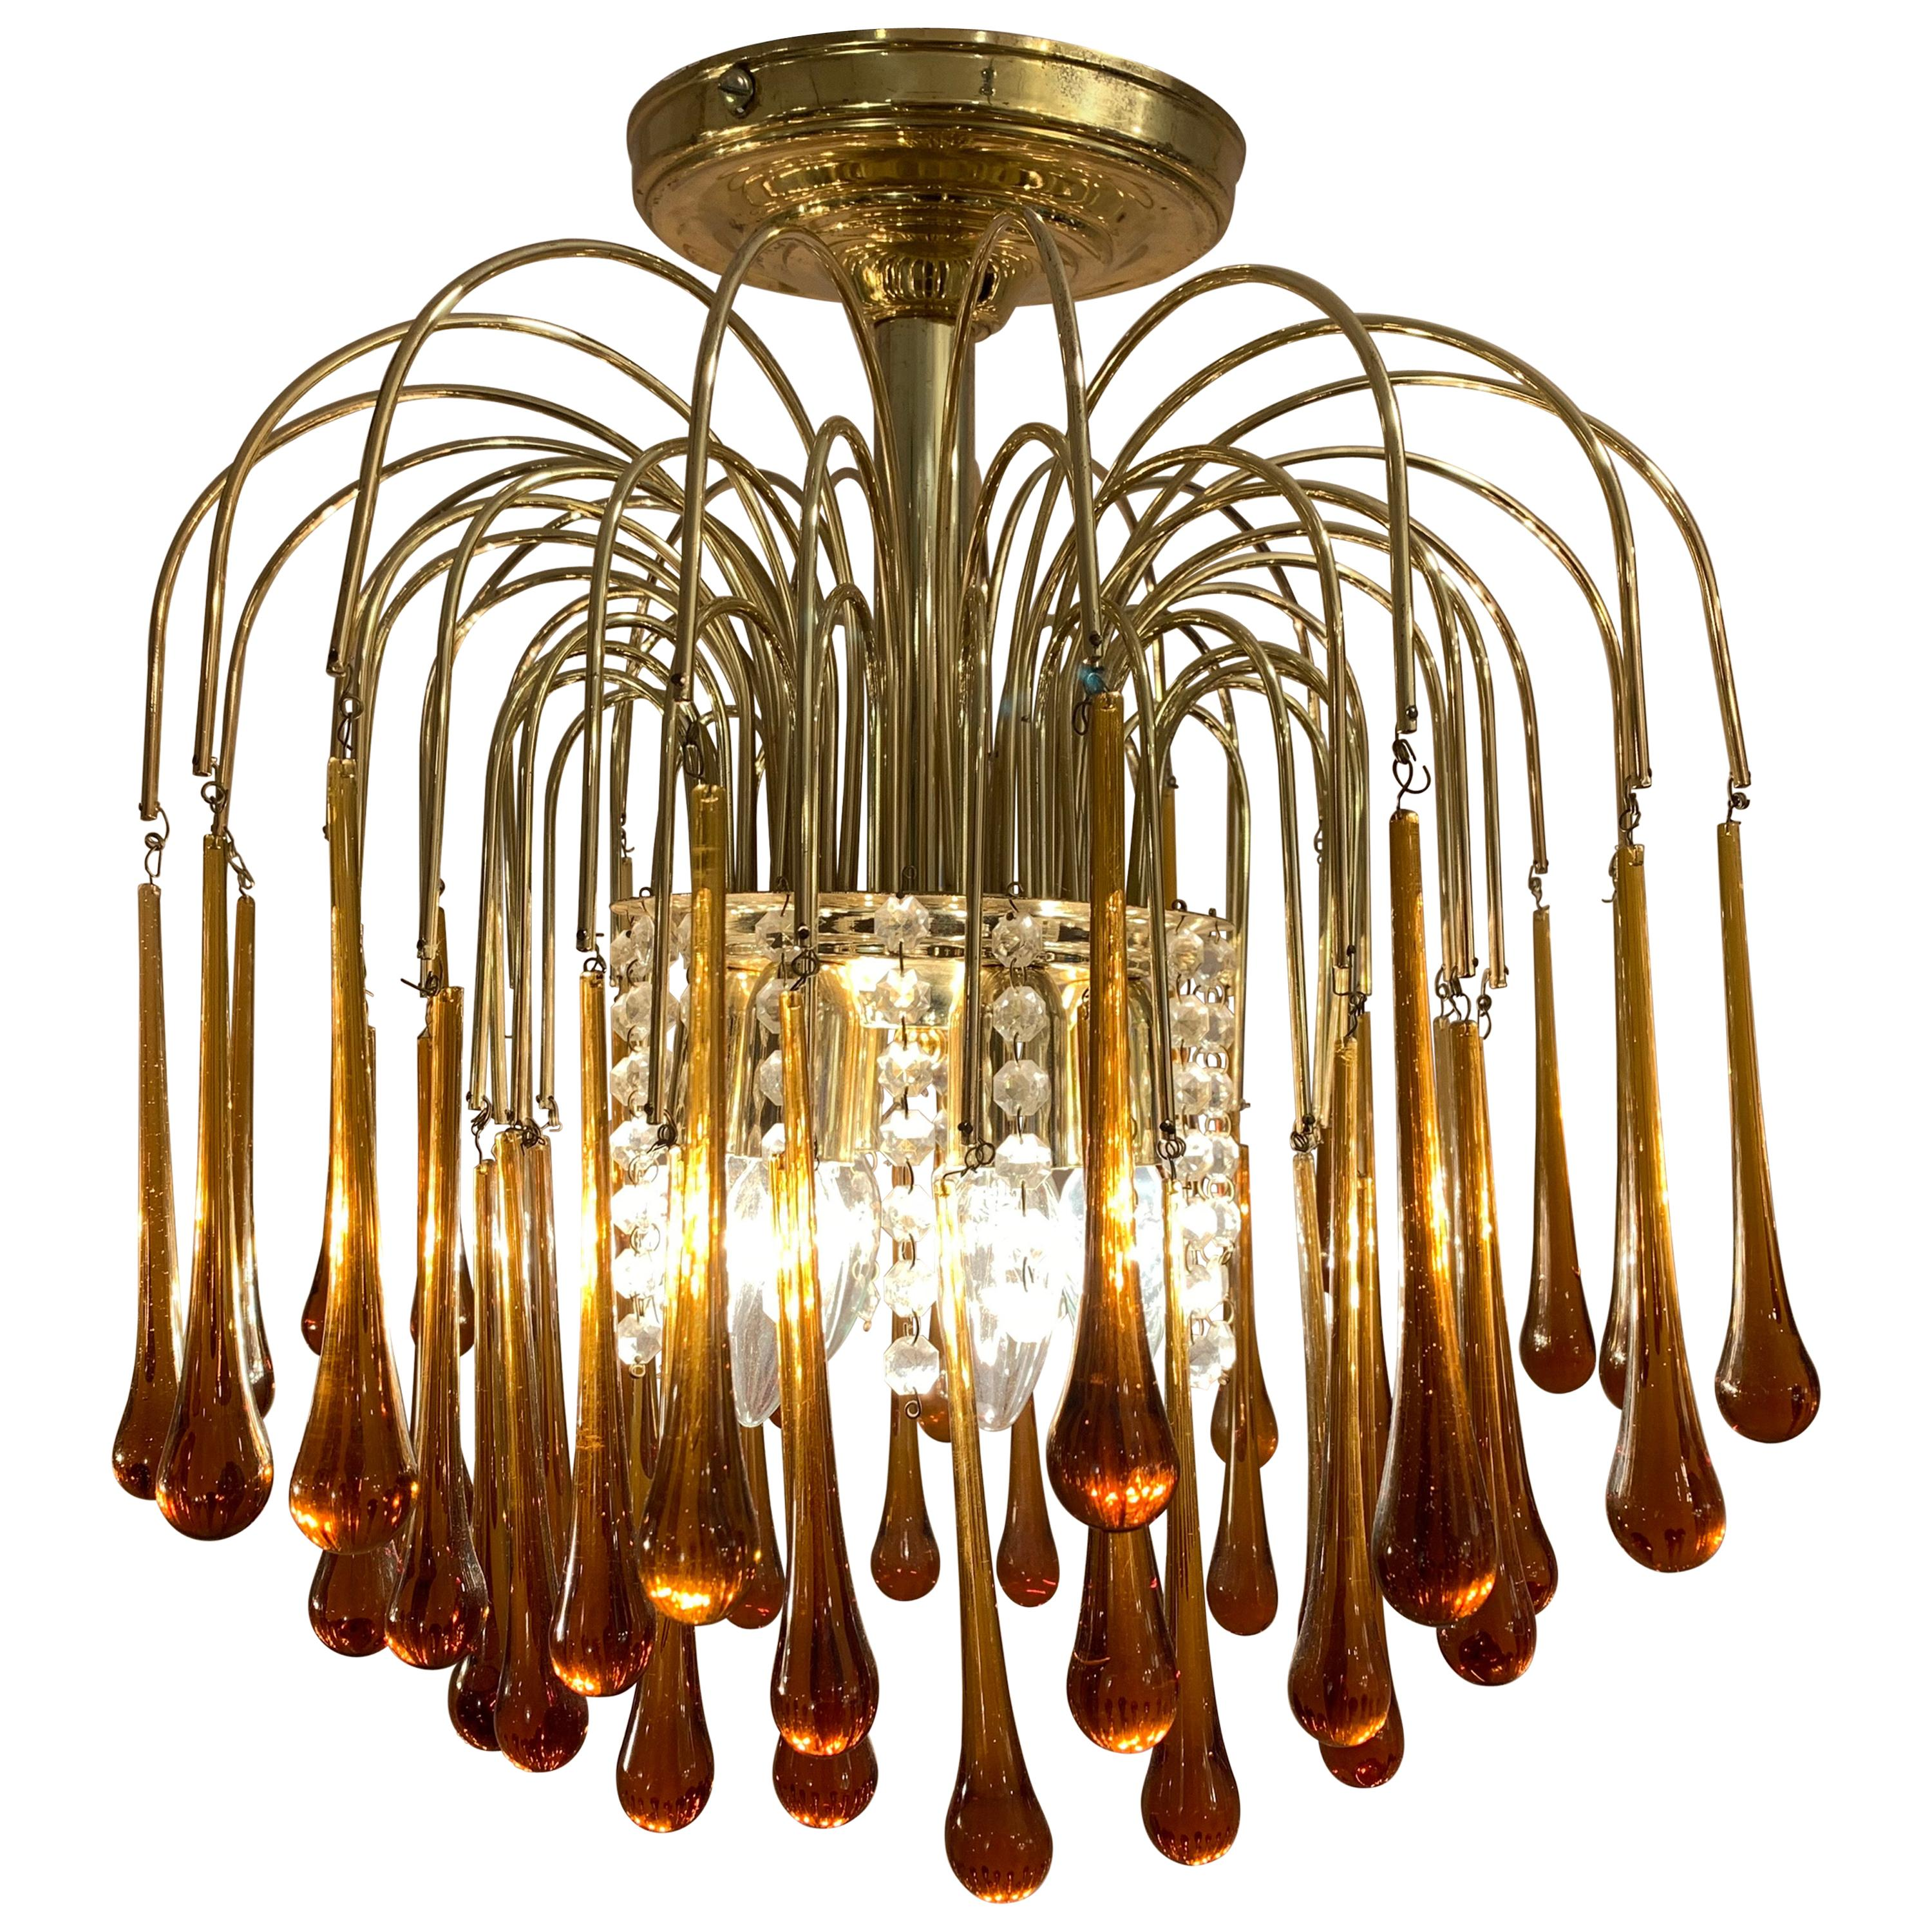 1960s Italian Brass and Murano Glass Flushmount Chandelier by Paolo Venini